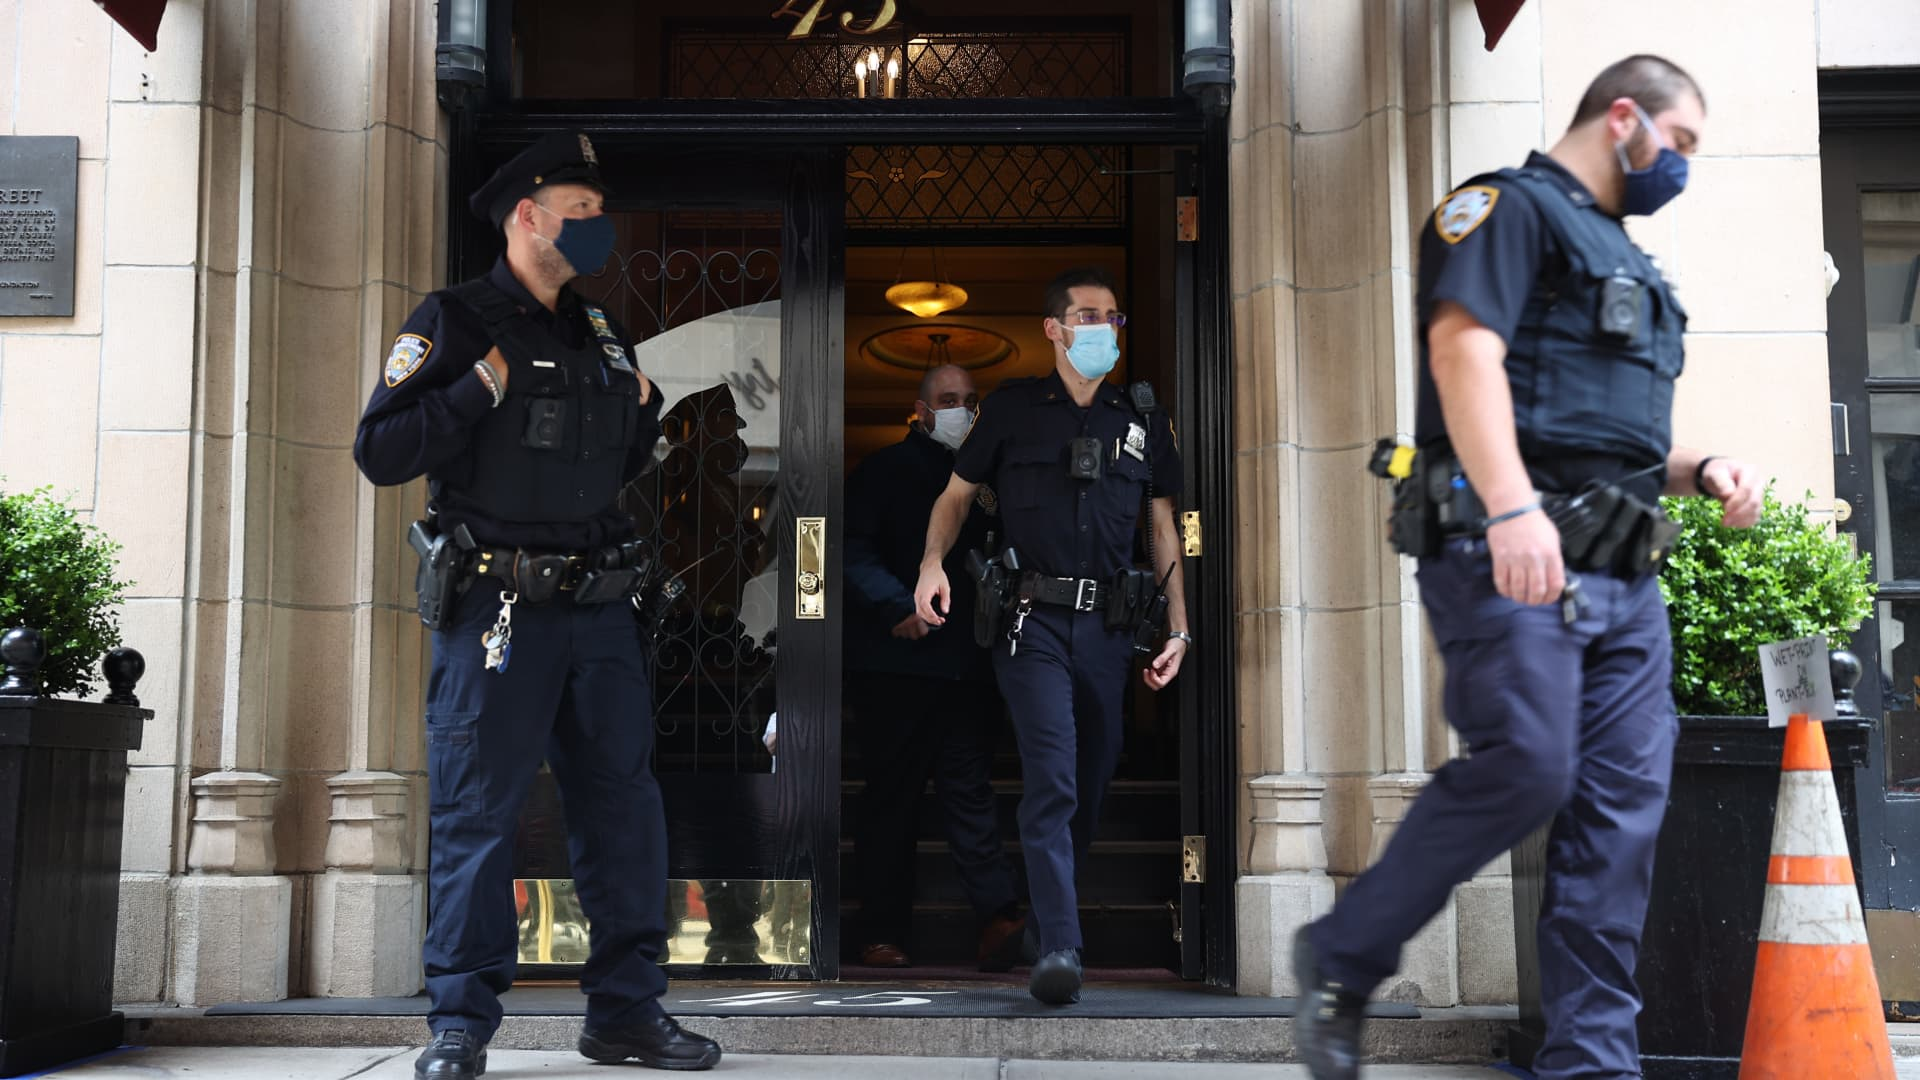 New York City Police officers investigate at the building where home of former President Donald Trump's personal attorney and the former mayor of New York City Rudy Giuliani located after FBI has executed a search warrant at Giulianiâs apartment in Manhattan of New York City, United States on April 28, 2021.